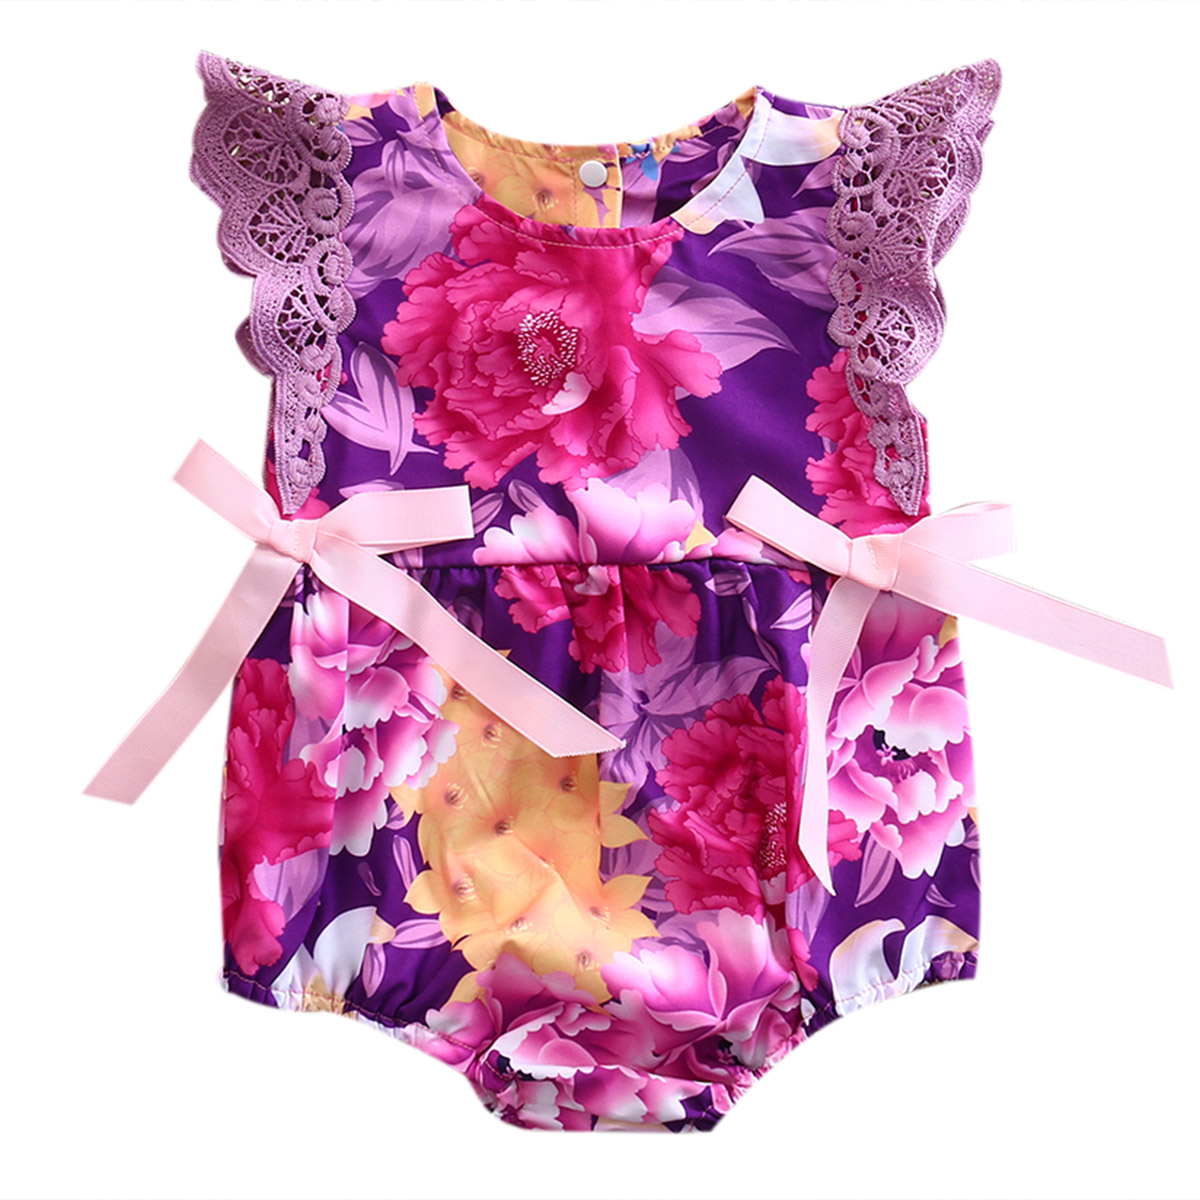 Cute Newborn Baby Girl Lace Floral Romper 2017 Summer Infant Bebes Toddler Kids Jumpsuit Outfits Sunsuit Children Clothes 0-24M summer newborn infant baby girl romper short sleeve floral romper jumpsuit outfits sunsuit clothes